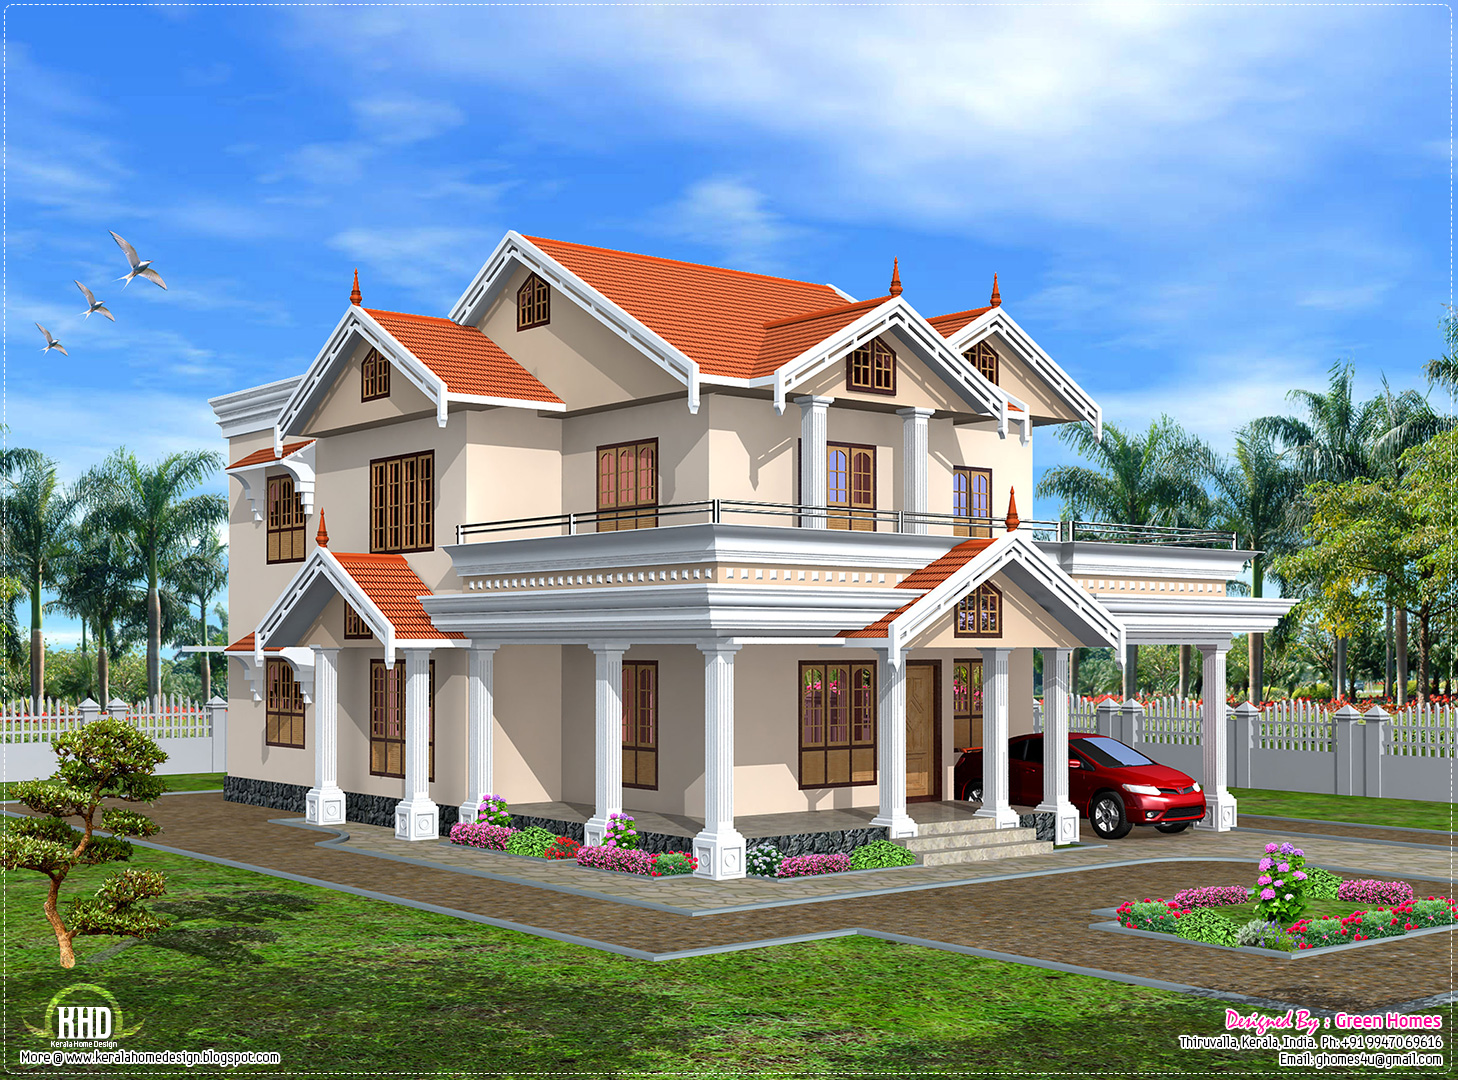 Cute Kerala home design in 2750 sq.feet - Kerala home design and floor plans